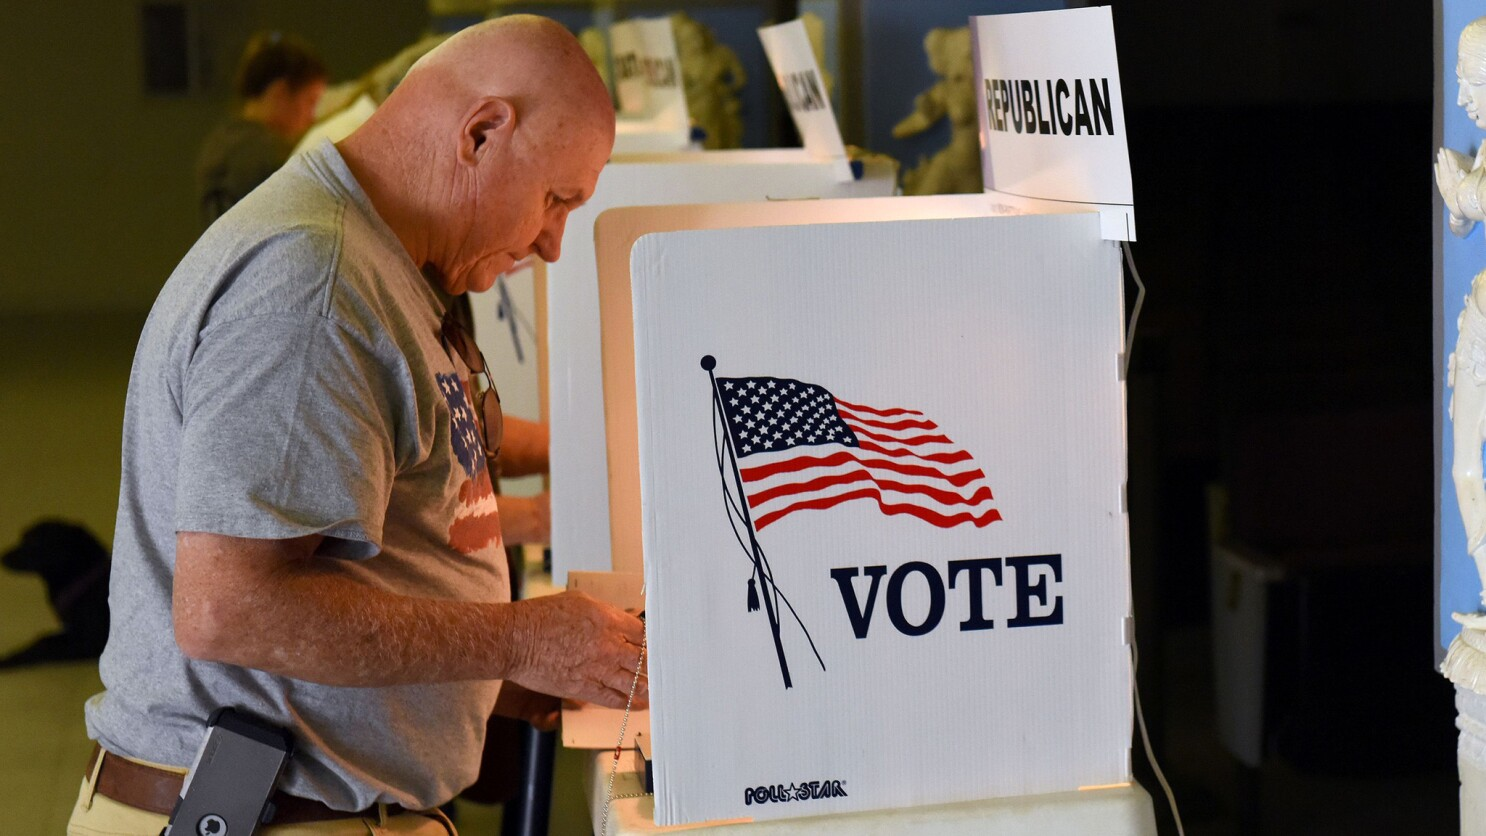 Coronavirus Newsom Orders New November In Person Voting Rules Los Angeles Times